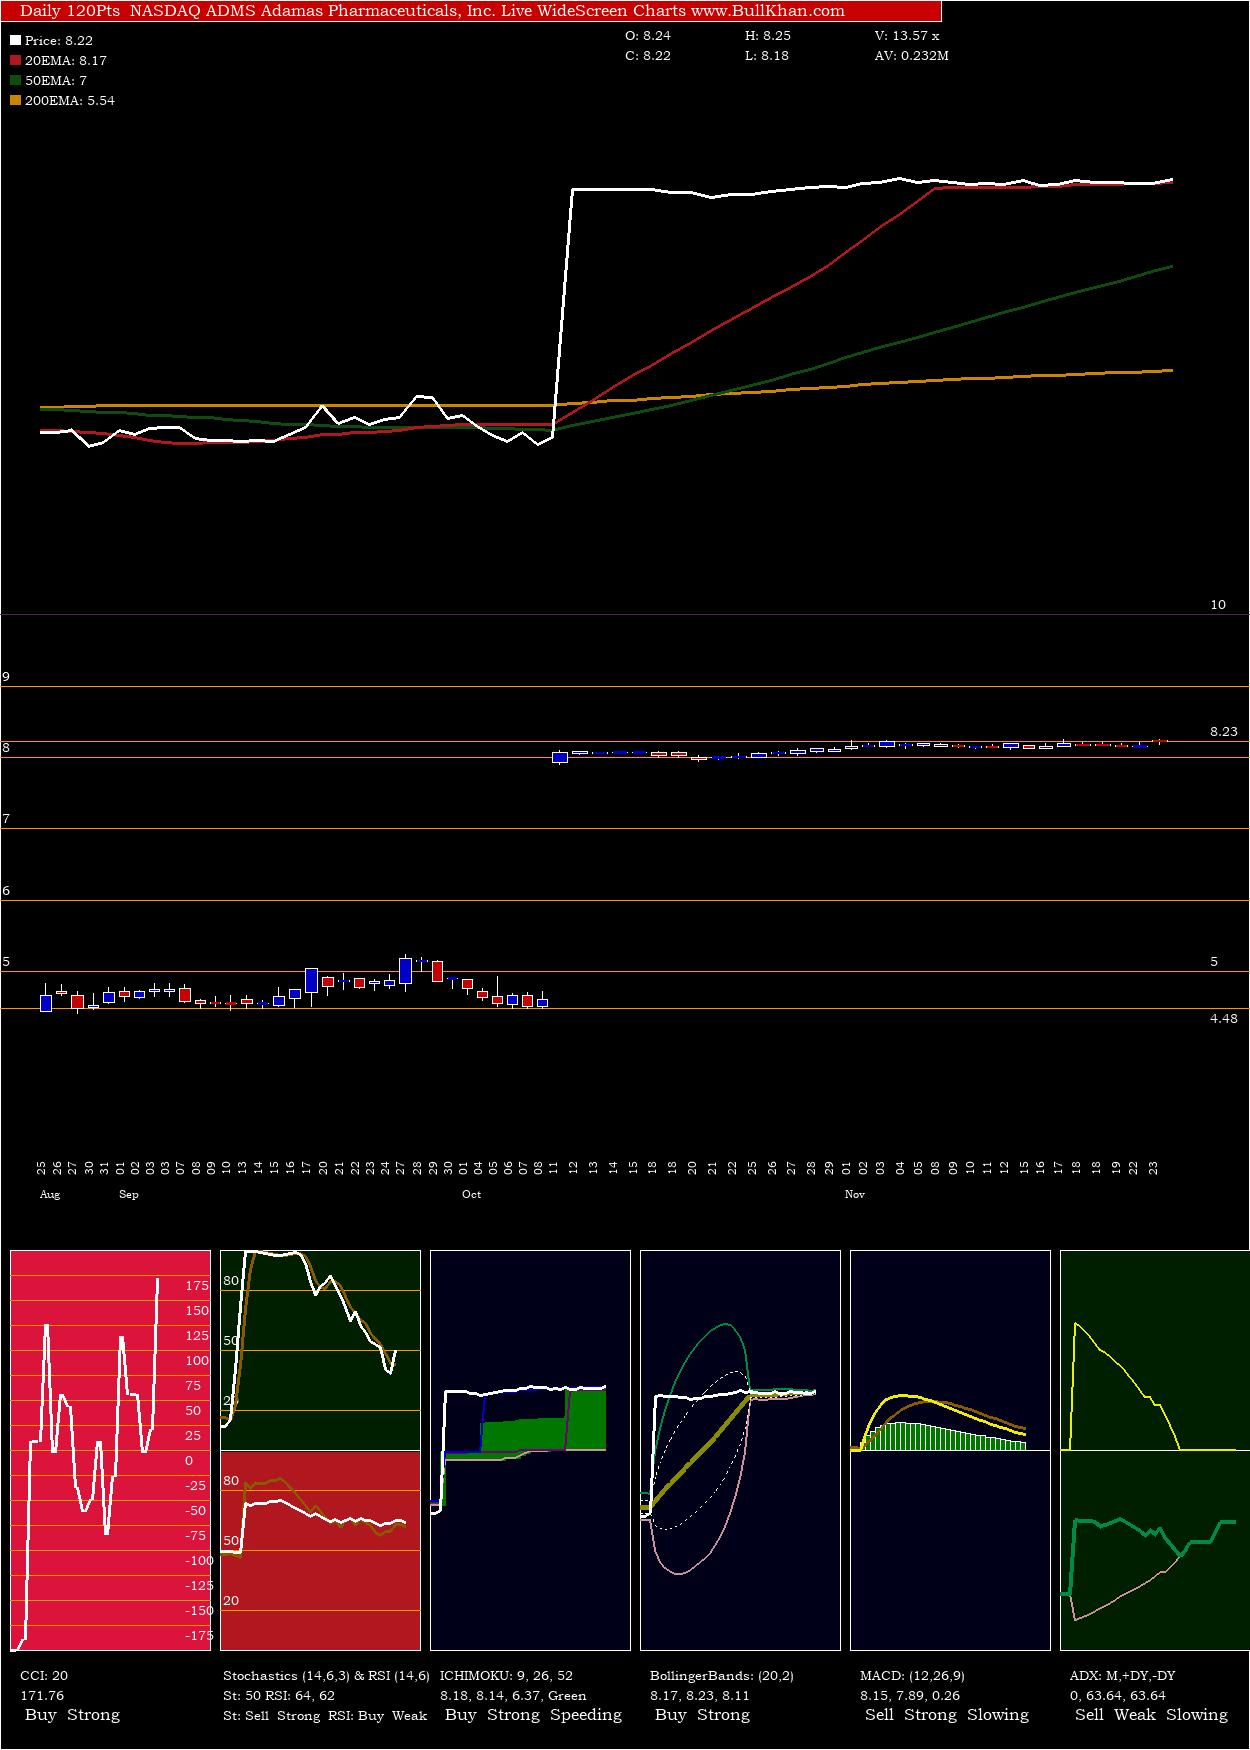 Adamas Pharmaceuticals charts and indicators